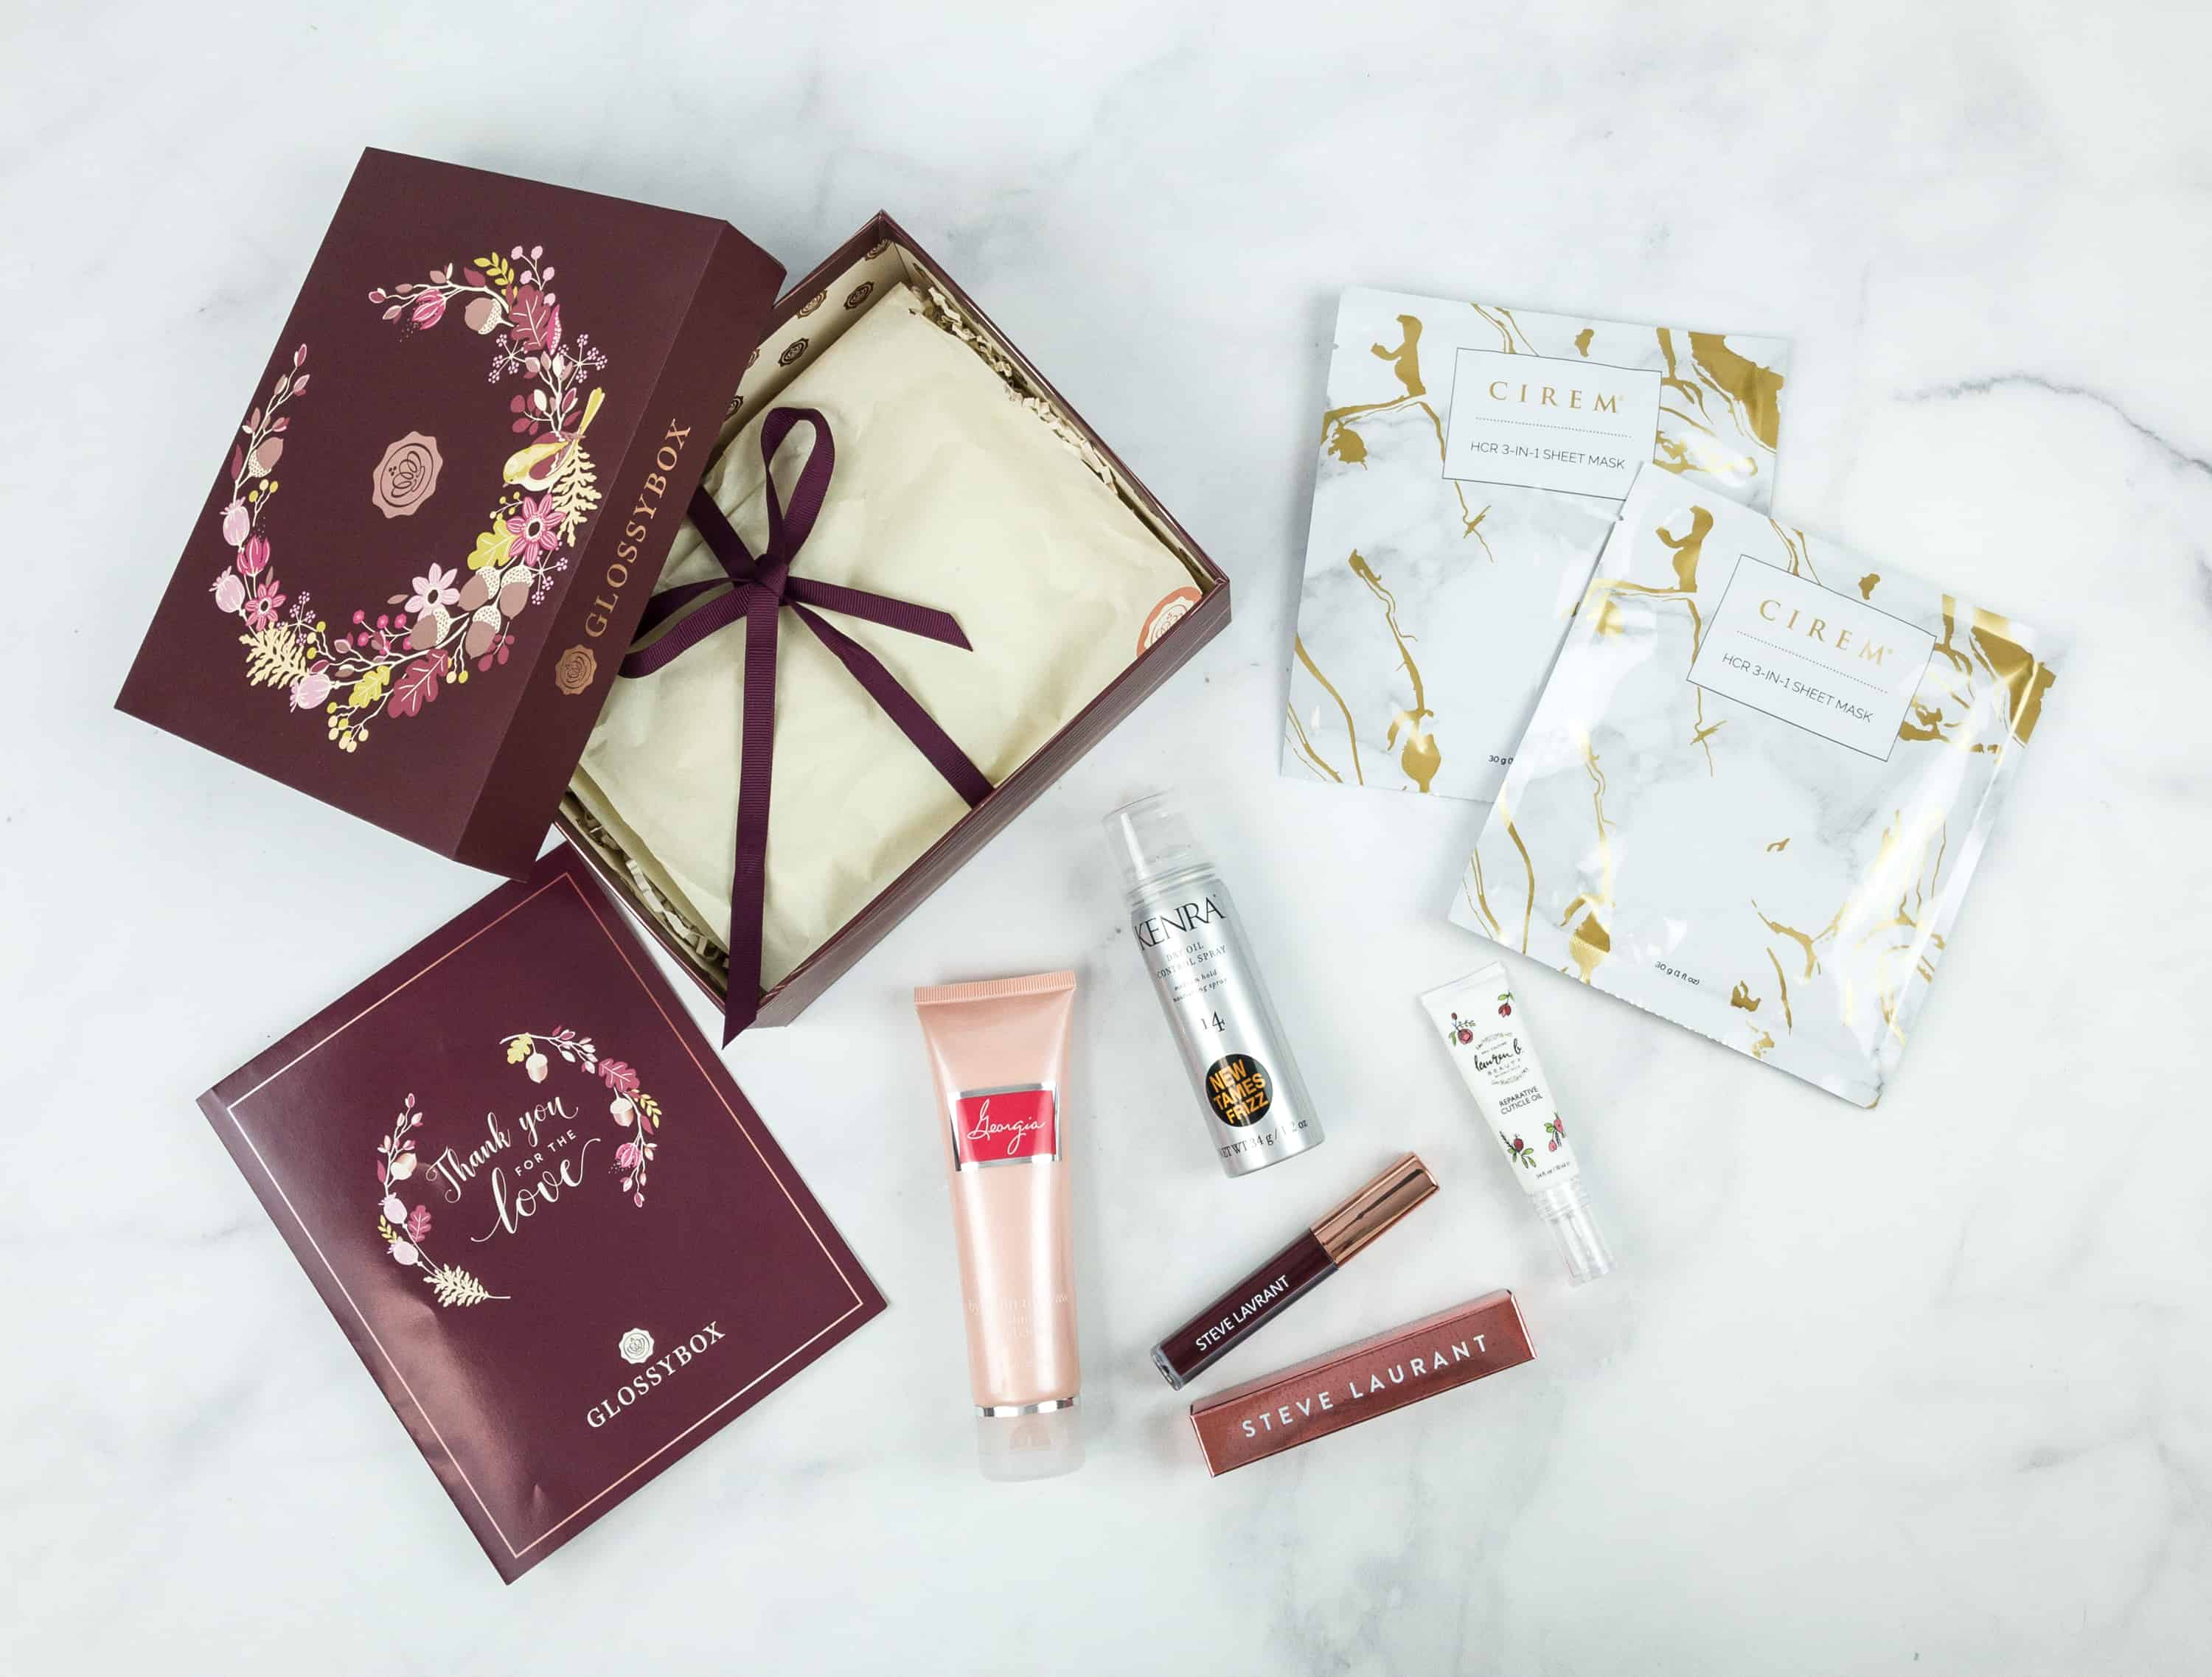 November 2018 GLOSSYBOX Subscription Box Review + Coupon